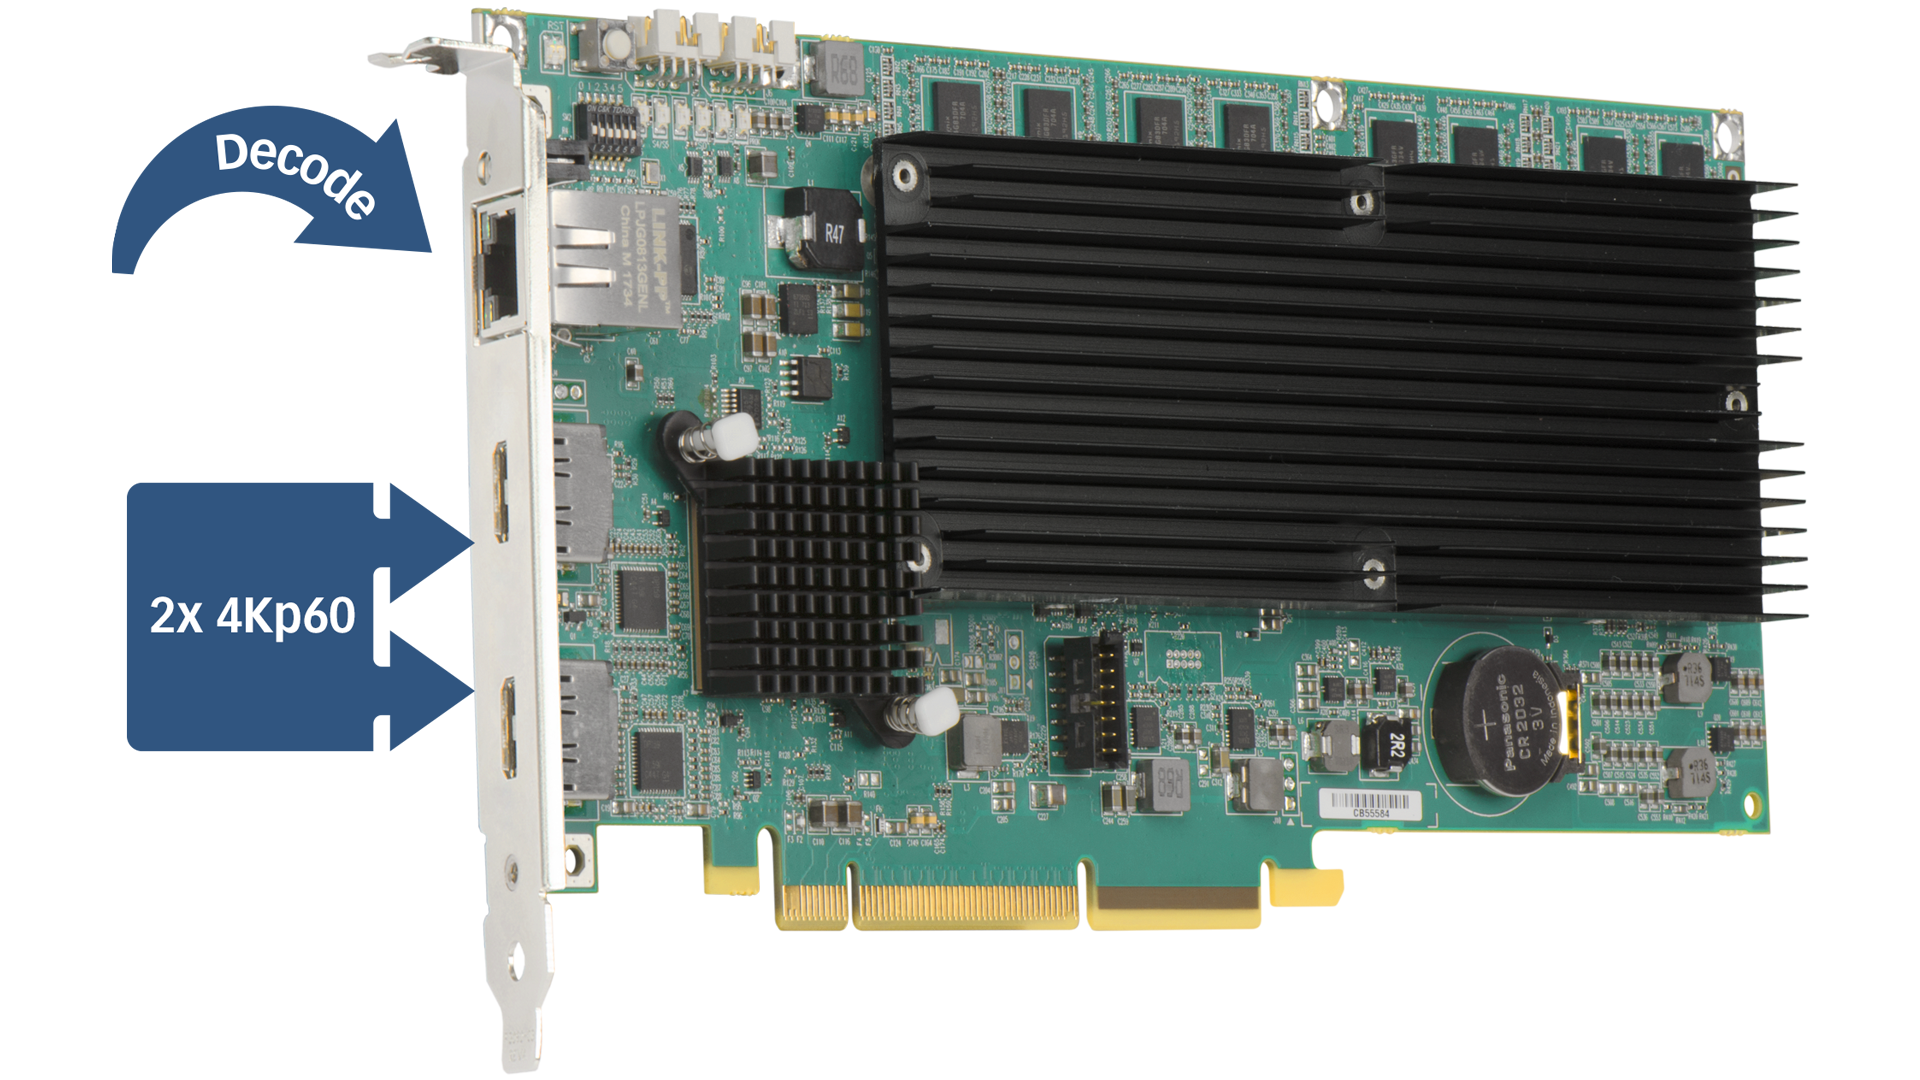 Mura IPX 4K DisplayPort and Decode Card (Fanless)